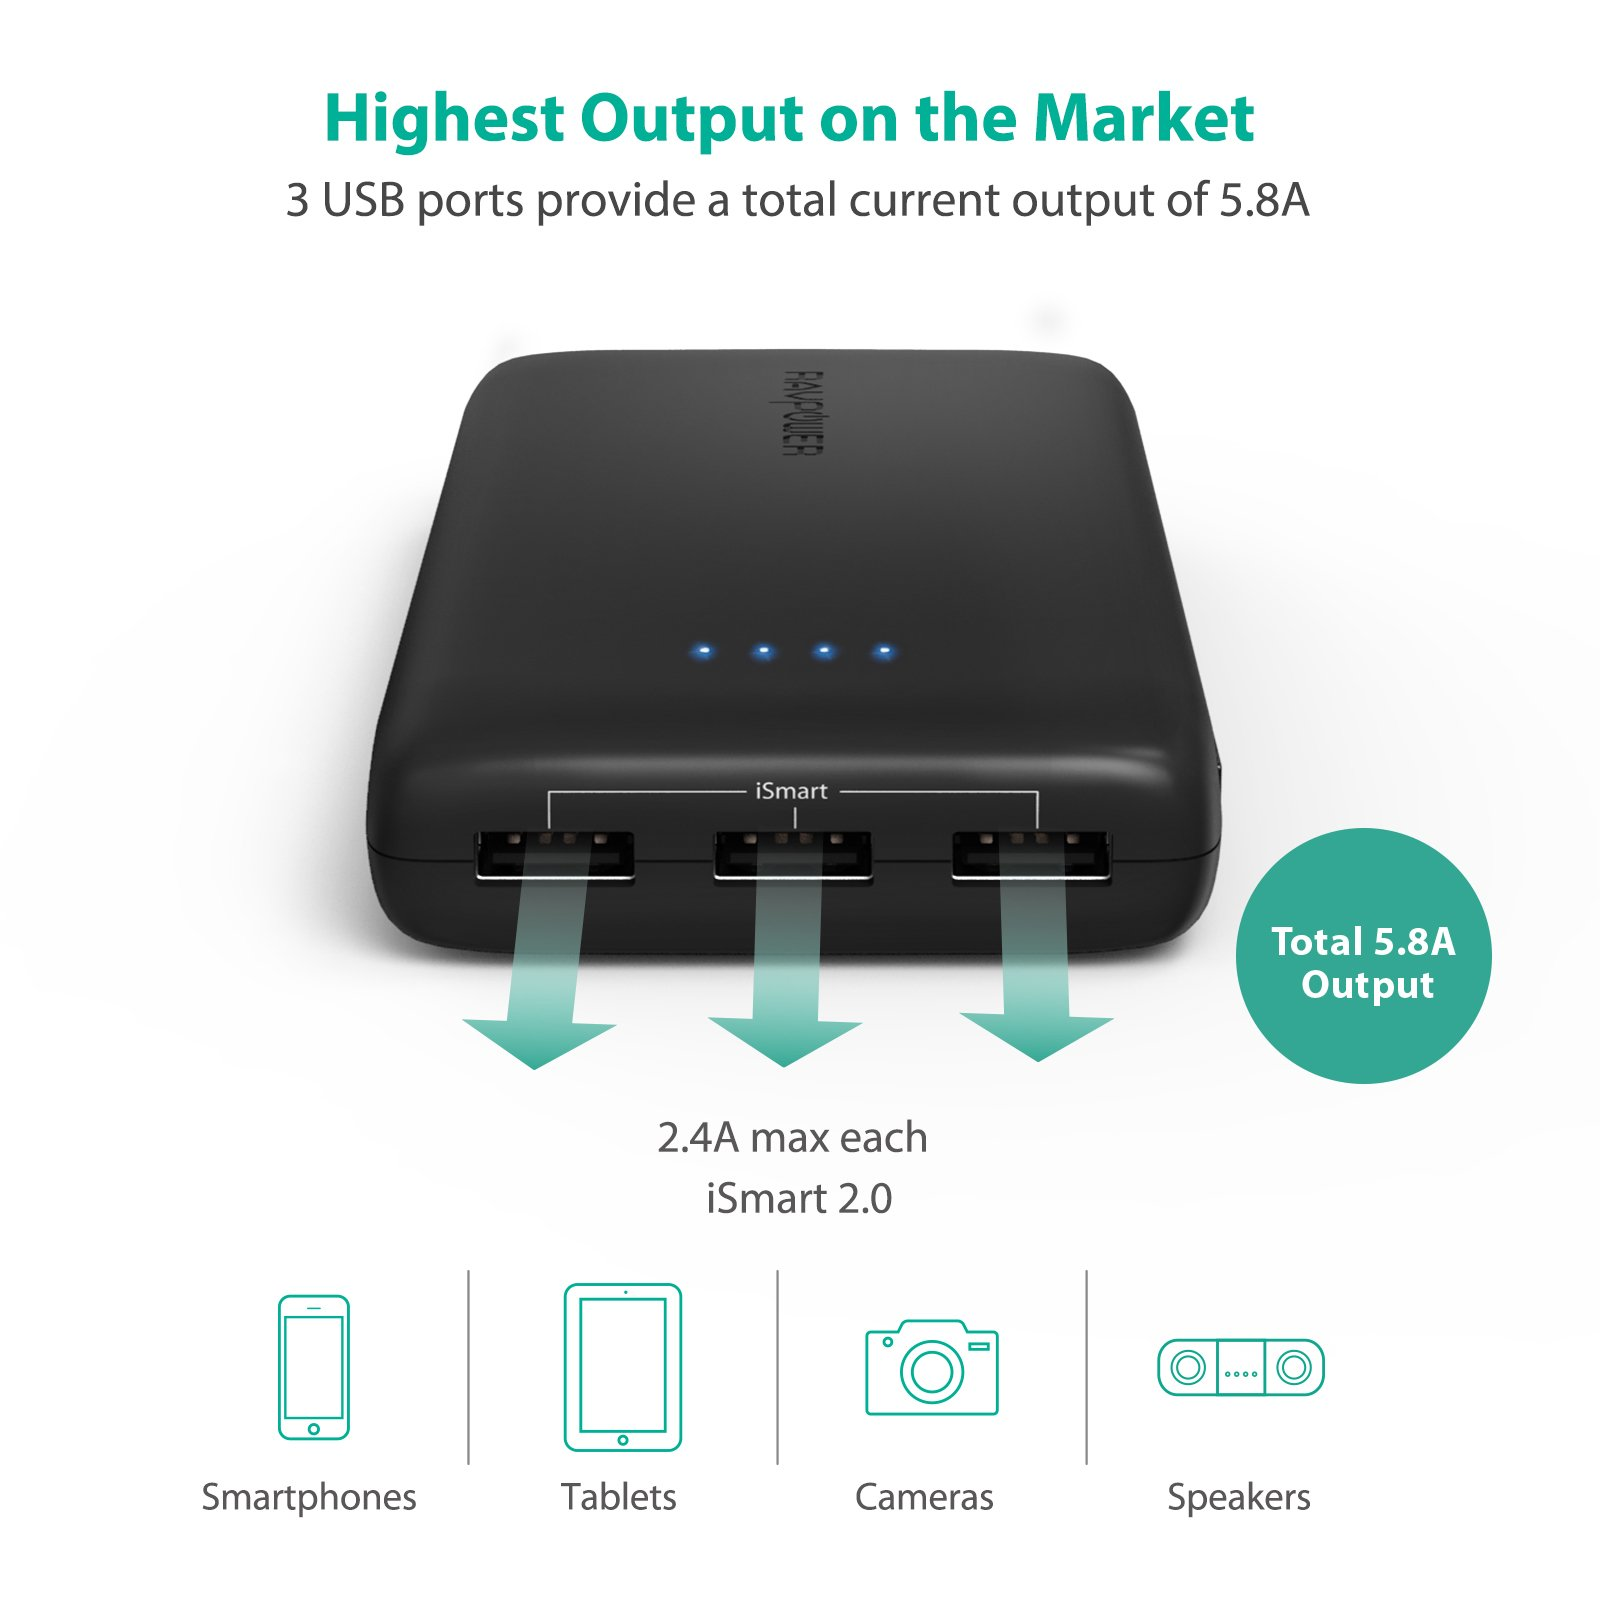 RAVPower Portable Charger 22000mAh External Battery Pack 22000 Power Banks 5.8A Output 3-Port (2.4A Input, iSmart 2.0 USB Ports, Li-polymer Phone Charger) For Smartphone Tablet – Black by RAVPower (Image #4)